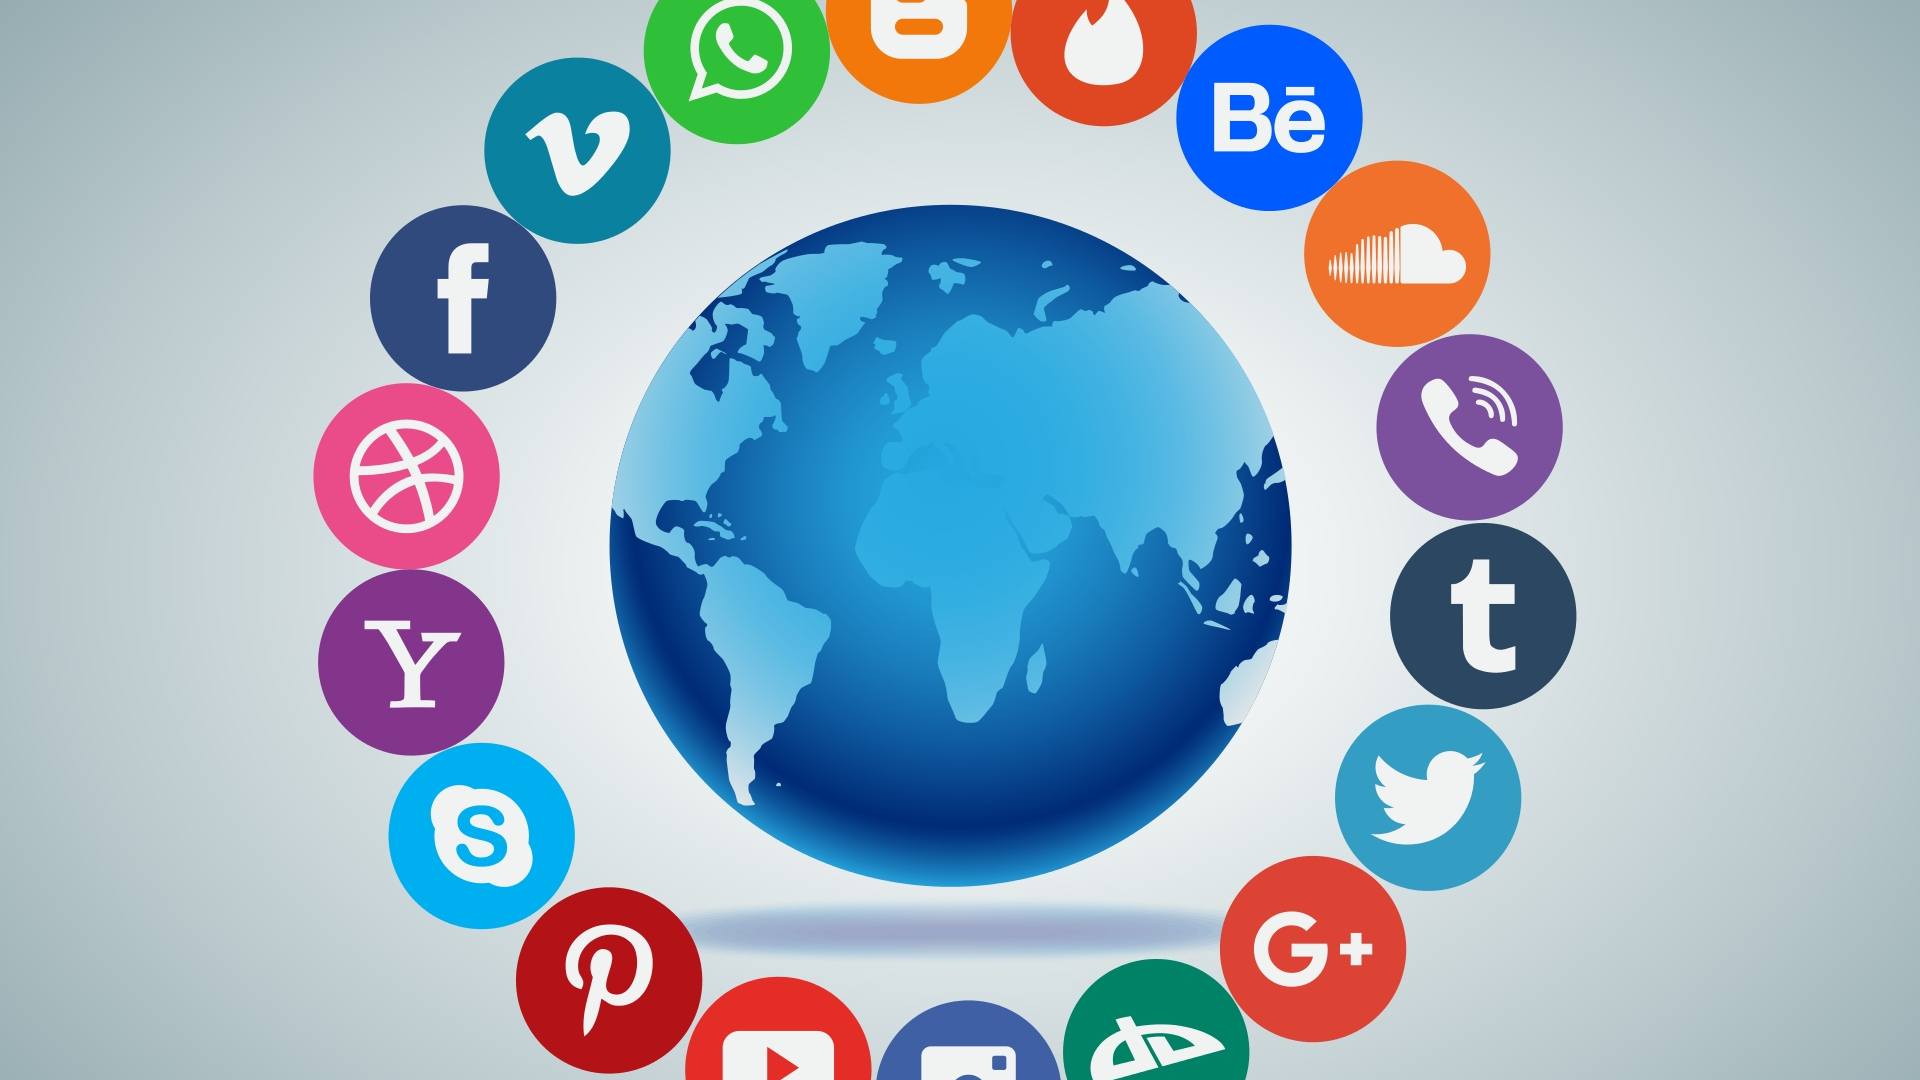 NADA GLOBAL offers expert social media marketing.